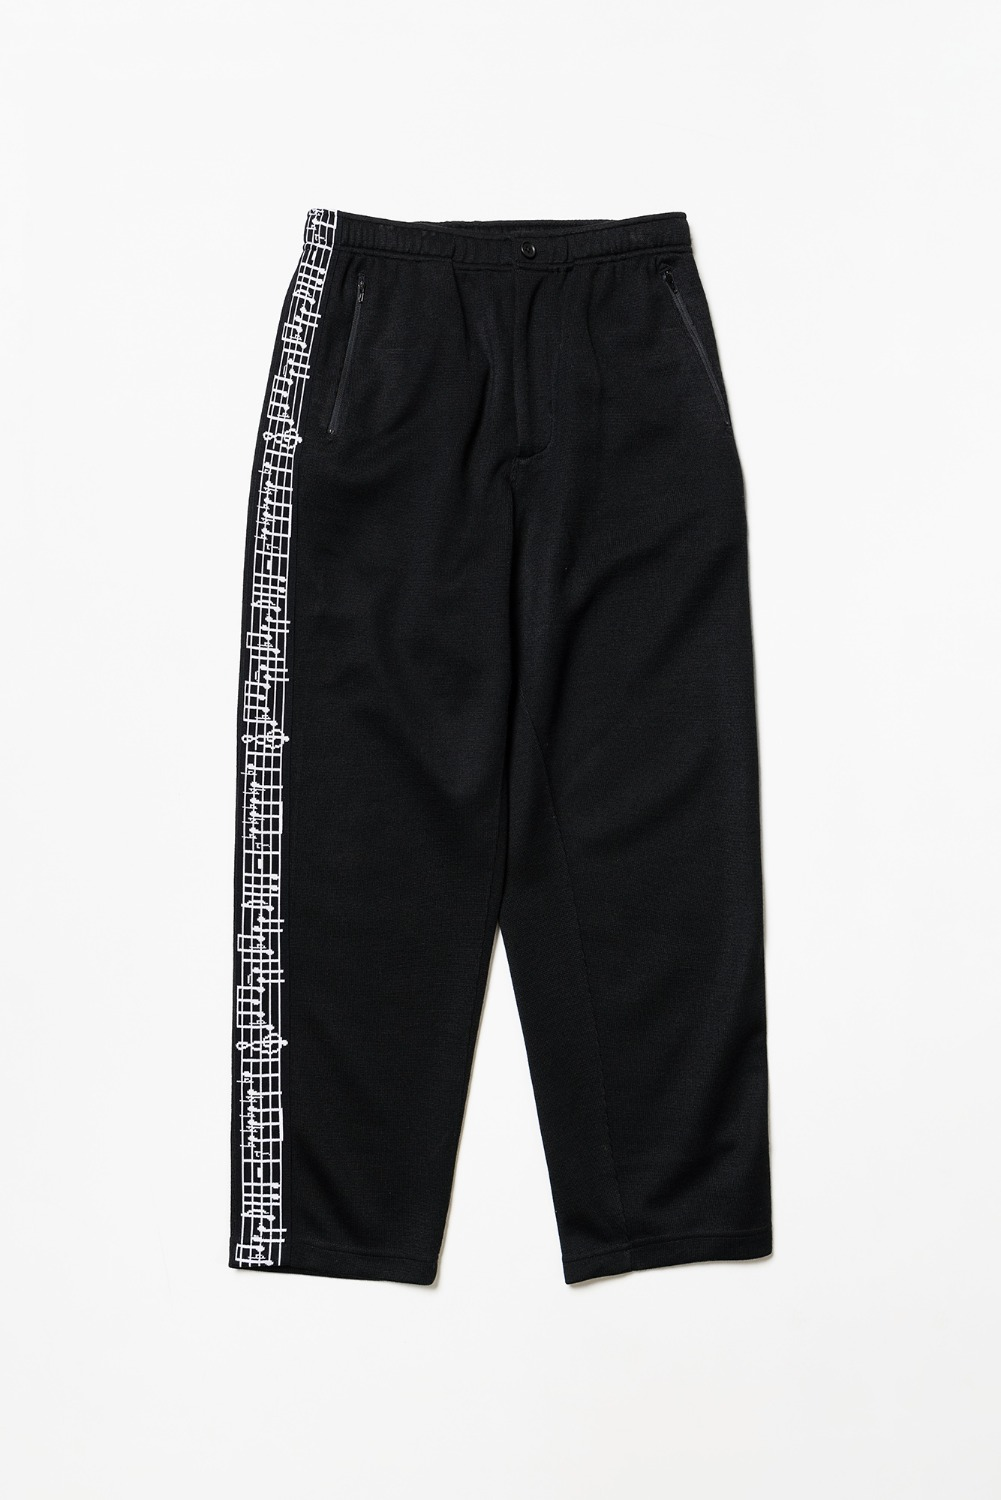 "ENGINEERED GARMENTS Jog Pant w/Tape ""Black Tri Blend Jersey Knit"""